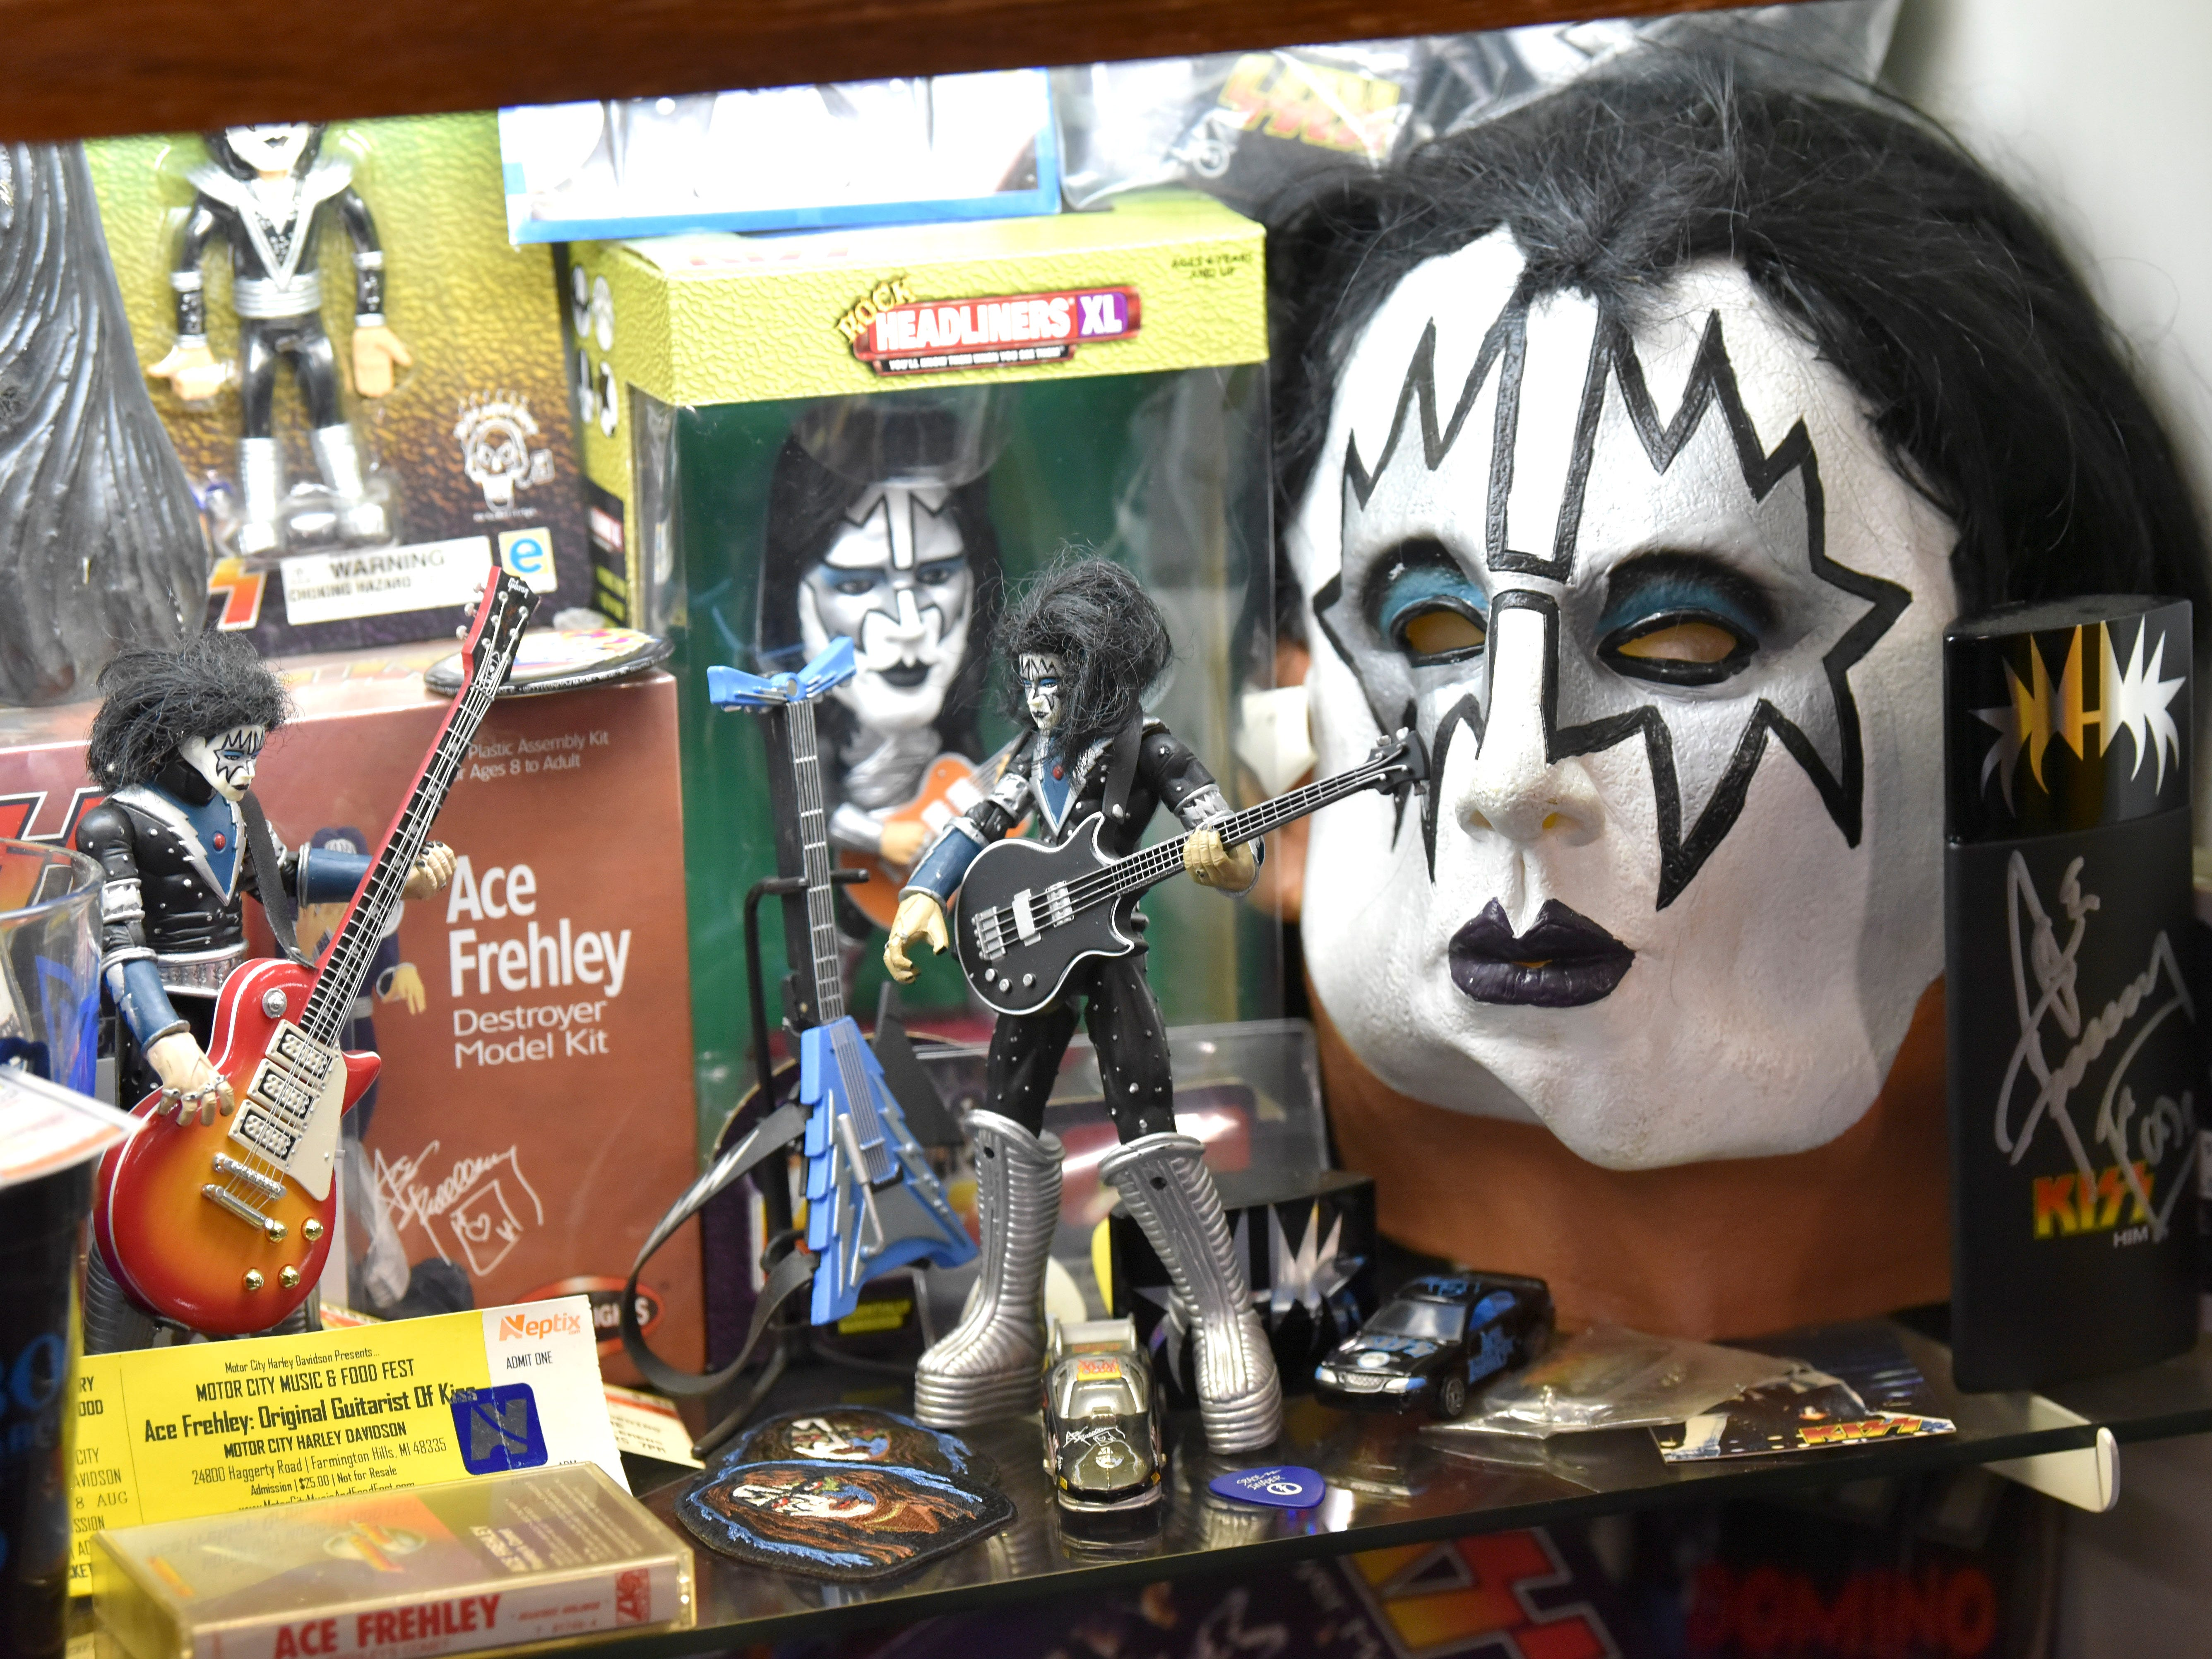 This is an Ace Frehley mask among other collectables.